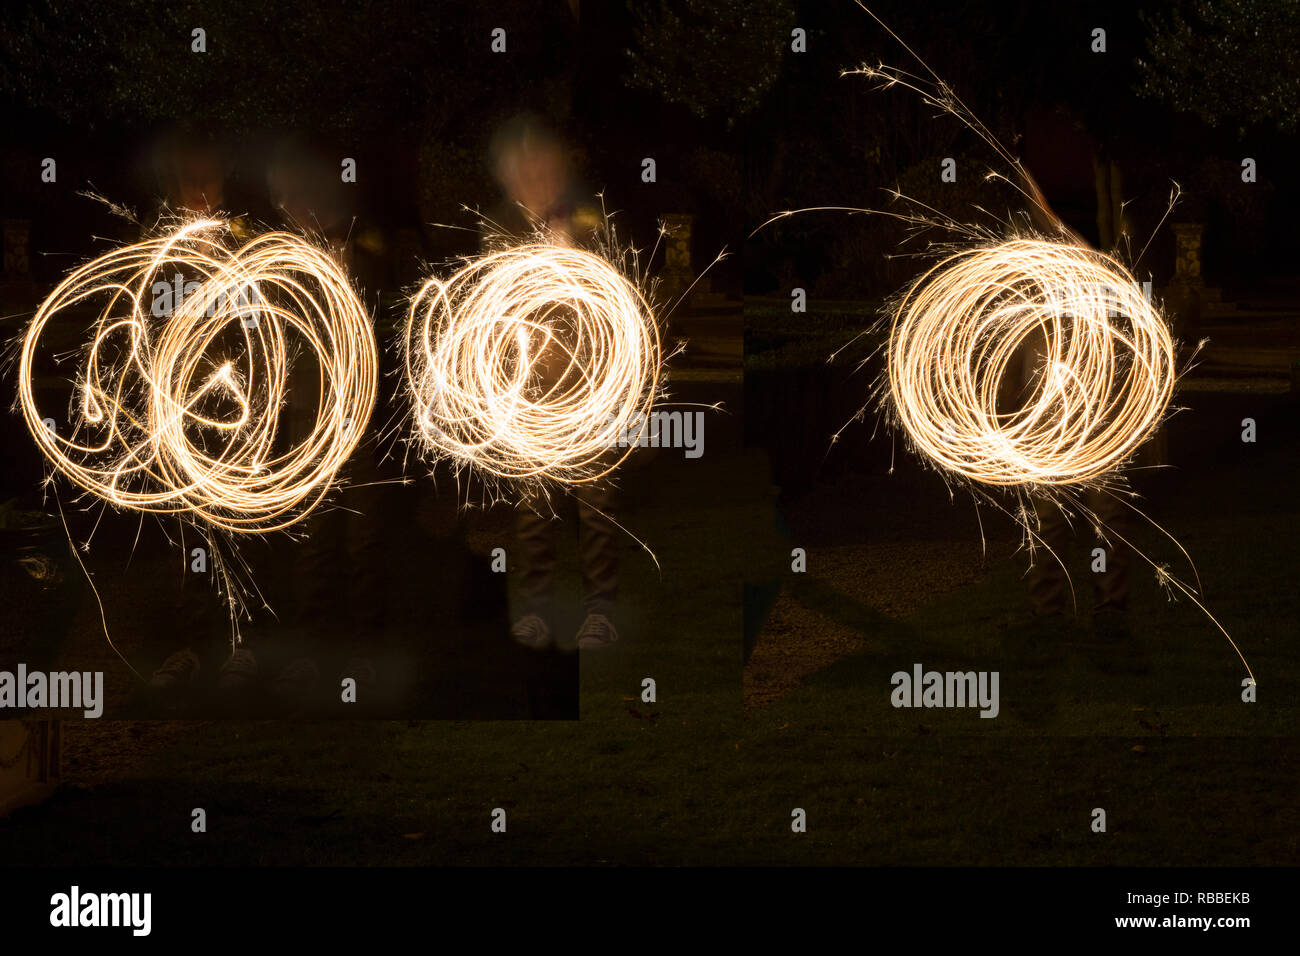 sparklers being whizzed around on a wedding day in the semi dark, by wedding guests, sparkler patterns in the dark, long exposure - Stock Image